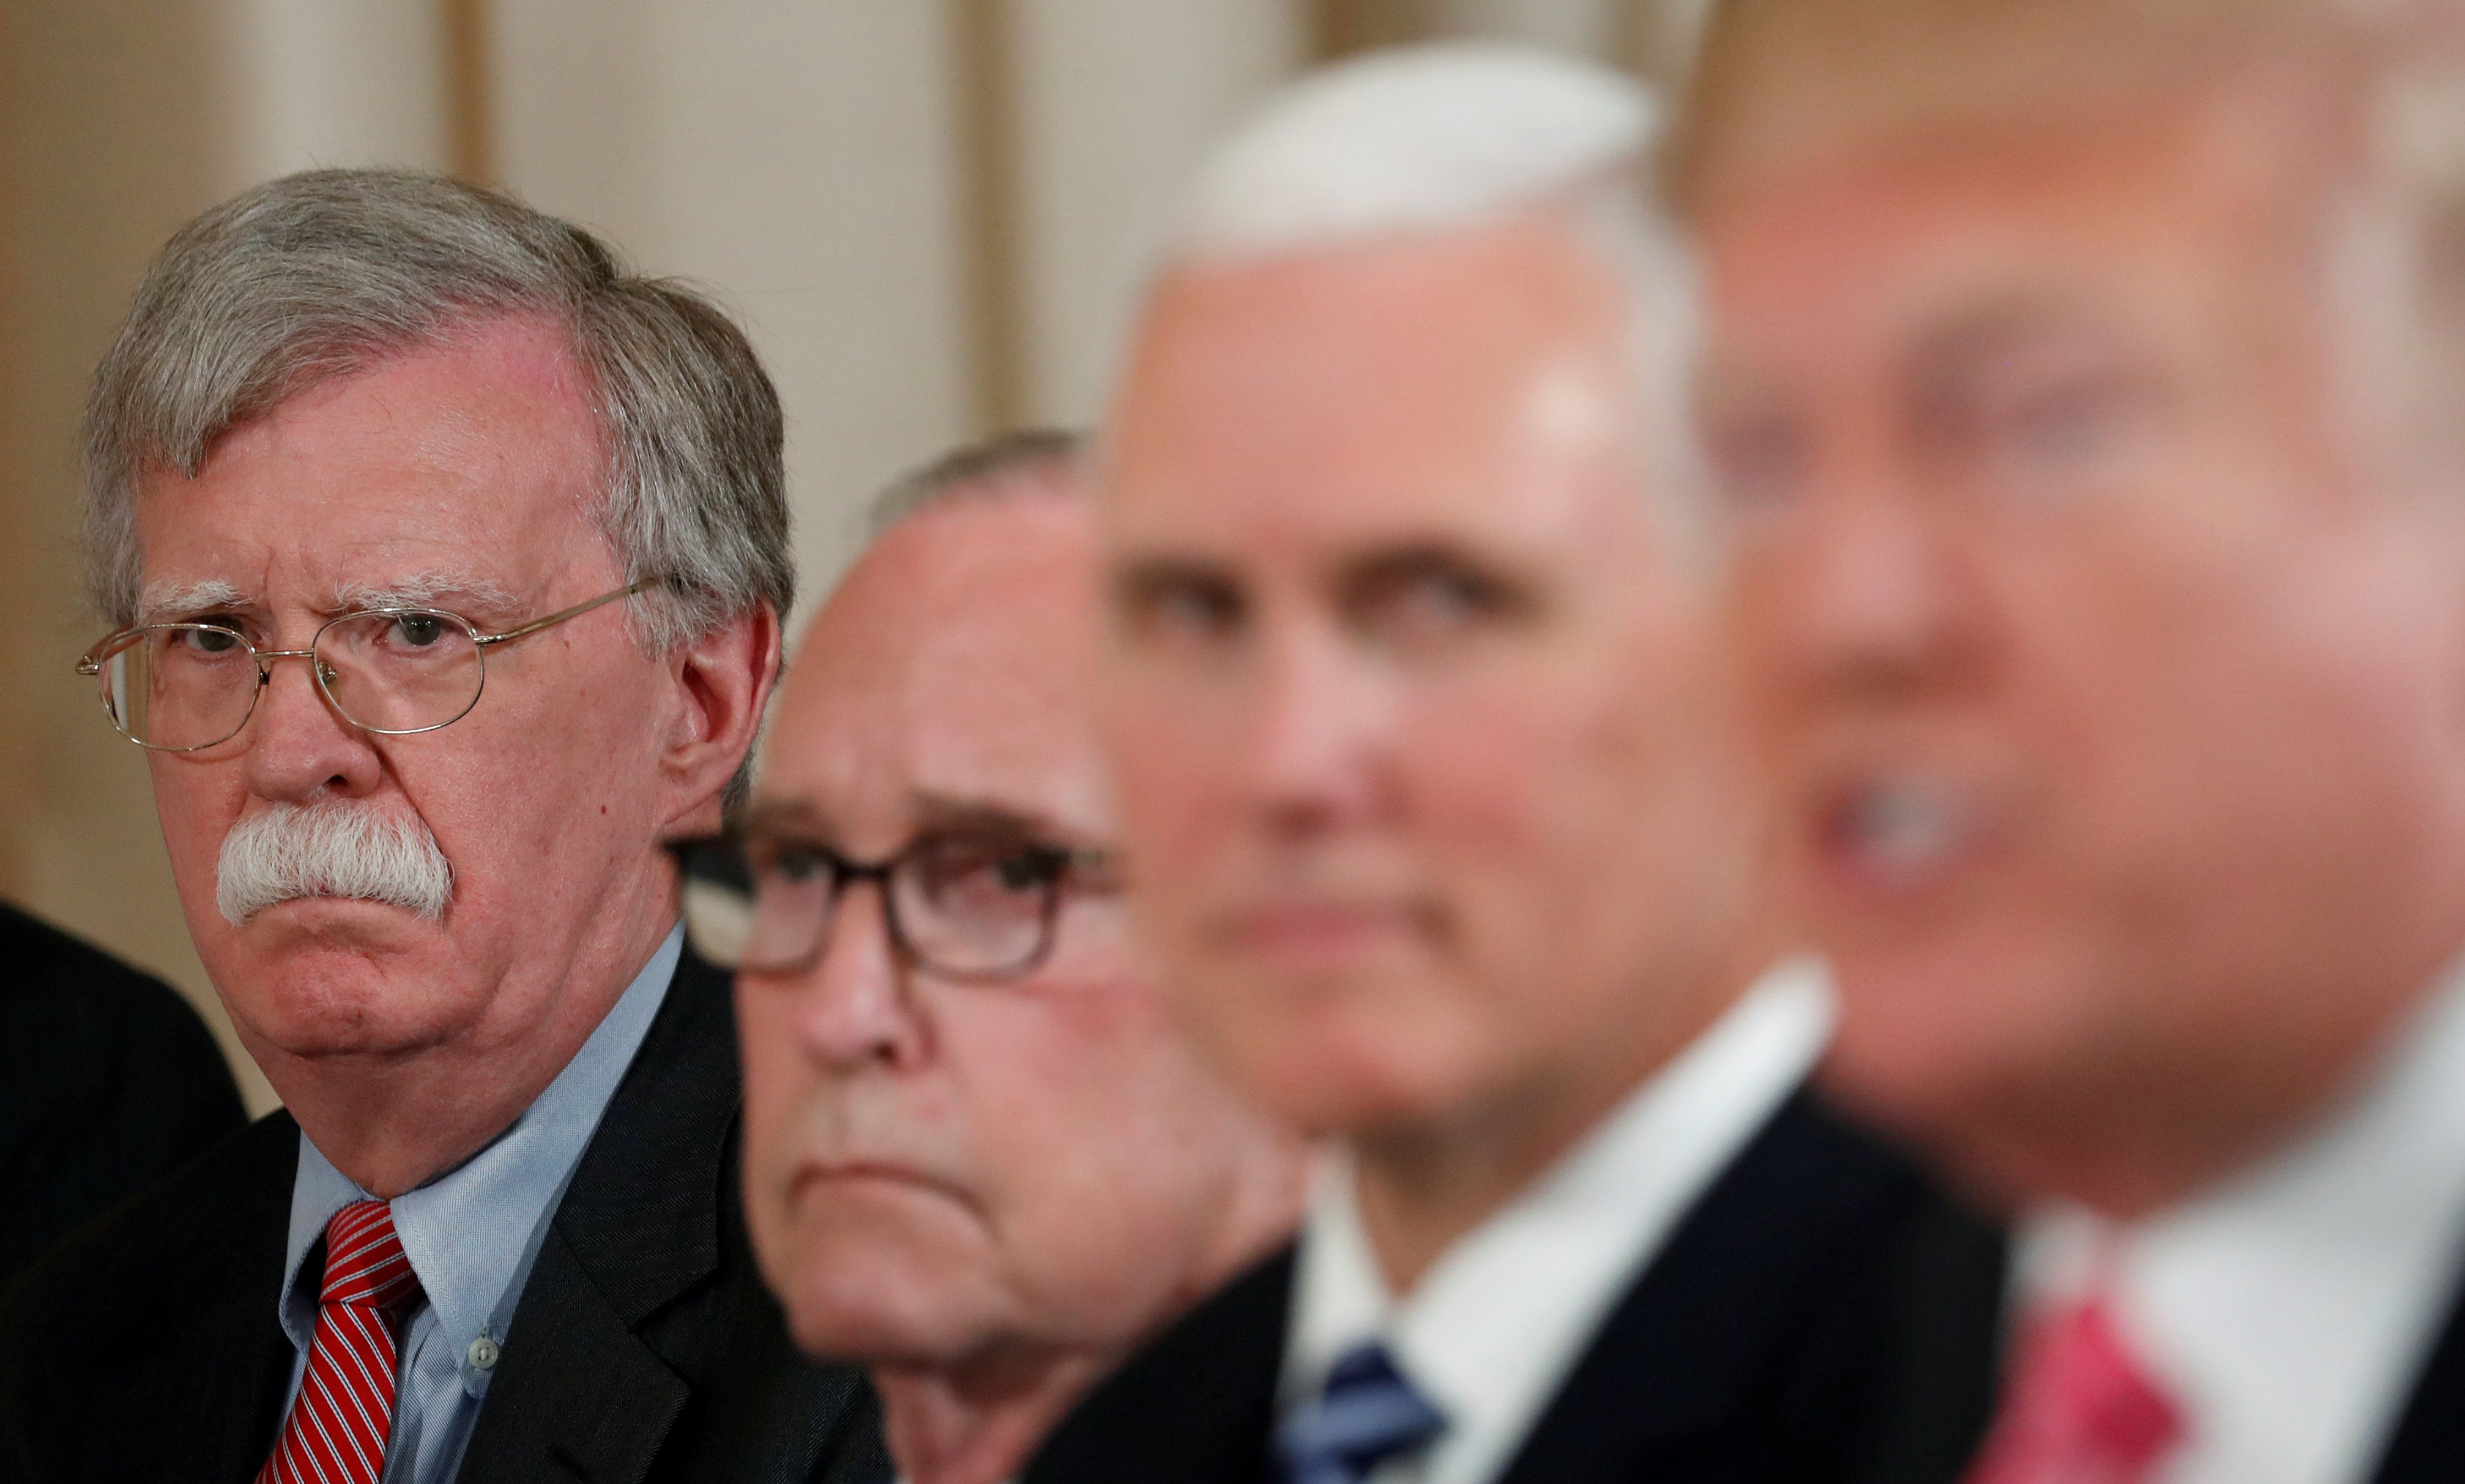 What We're Watching: Bolton's Exit, Kremlin Spies, and Turkish Threats